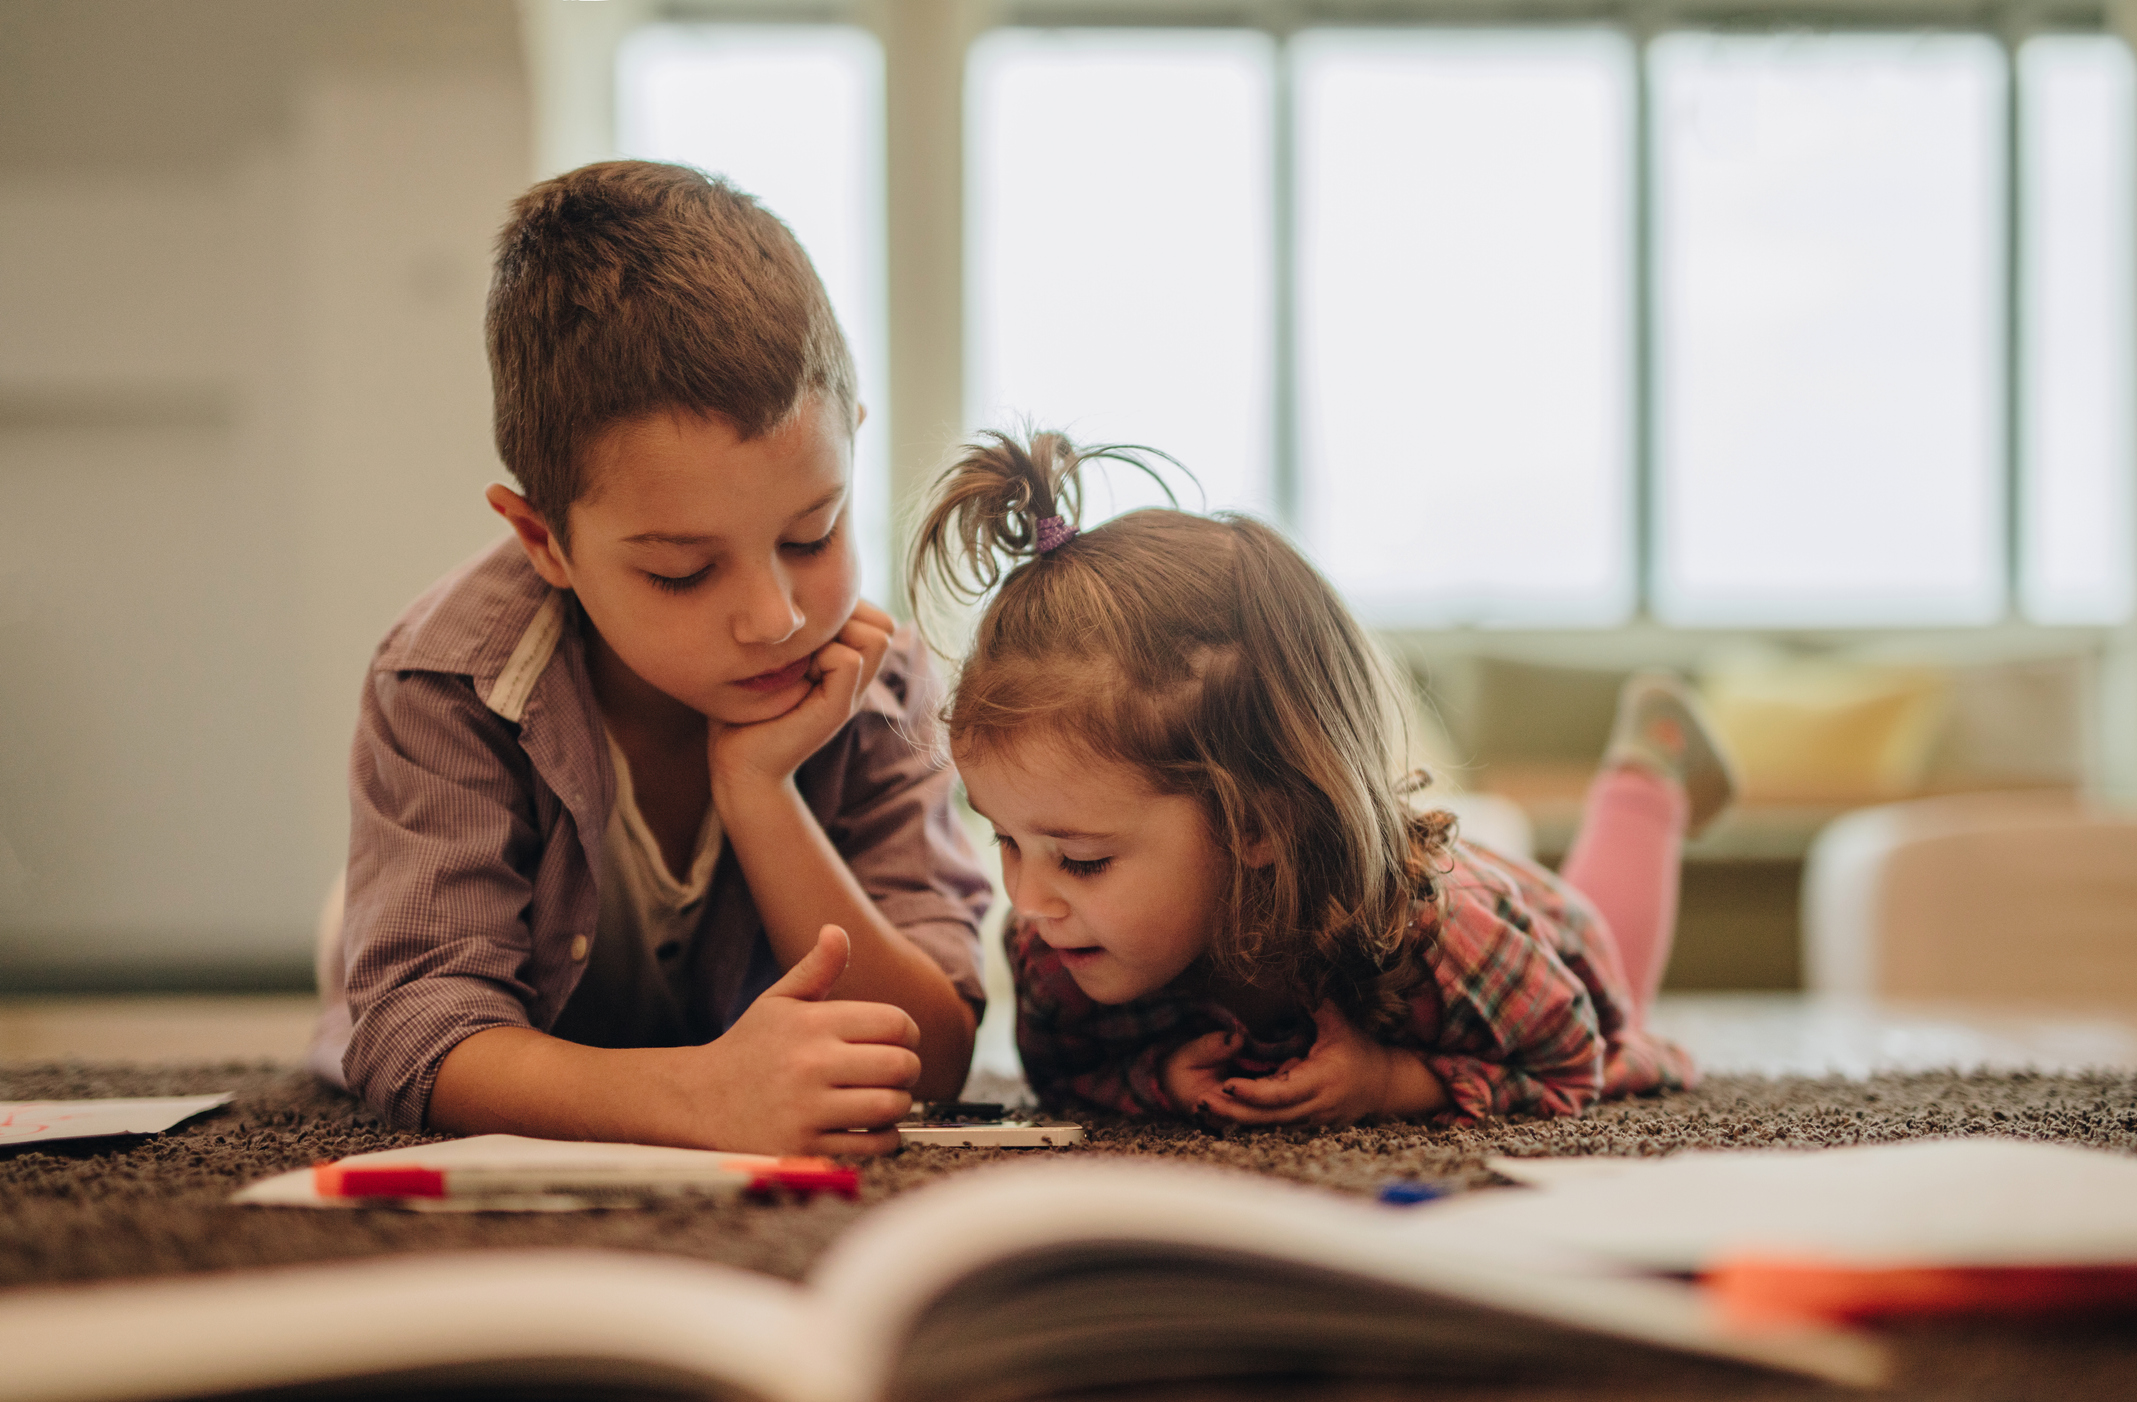 Children With An Older Brother Have Poorer Language Skills Than Those With A Big Sister